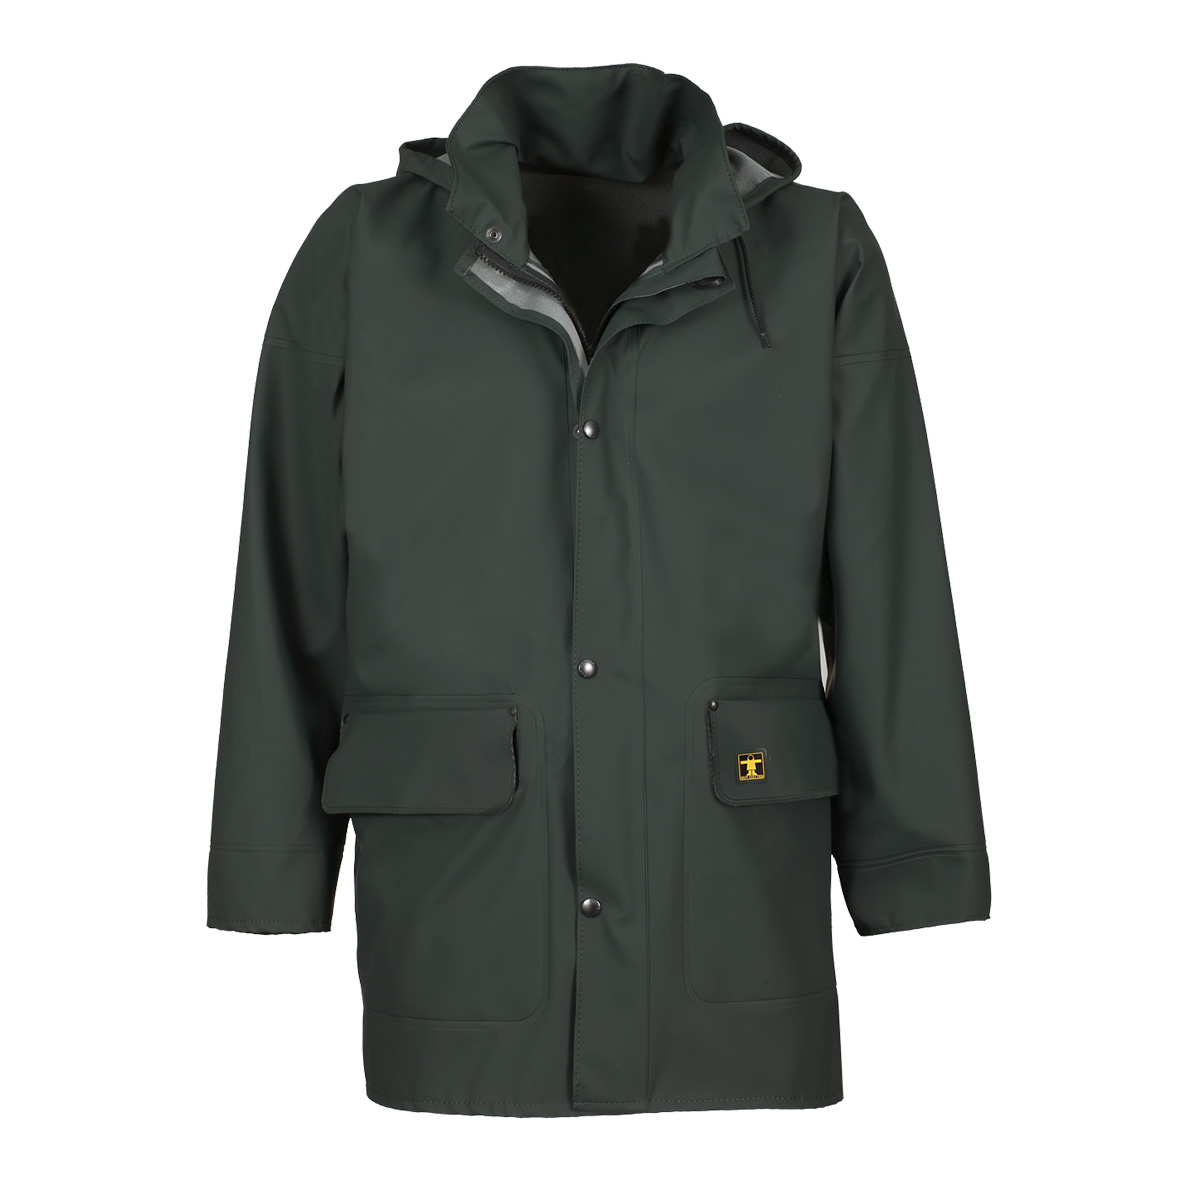 Guy Cotten VAL Green waterproof Jacket